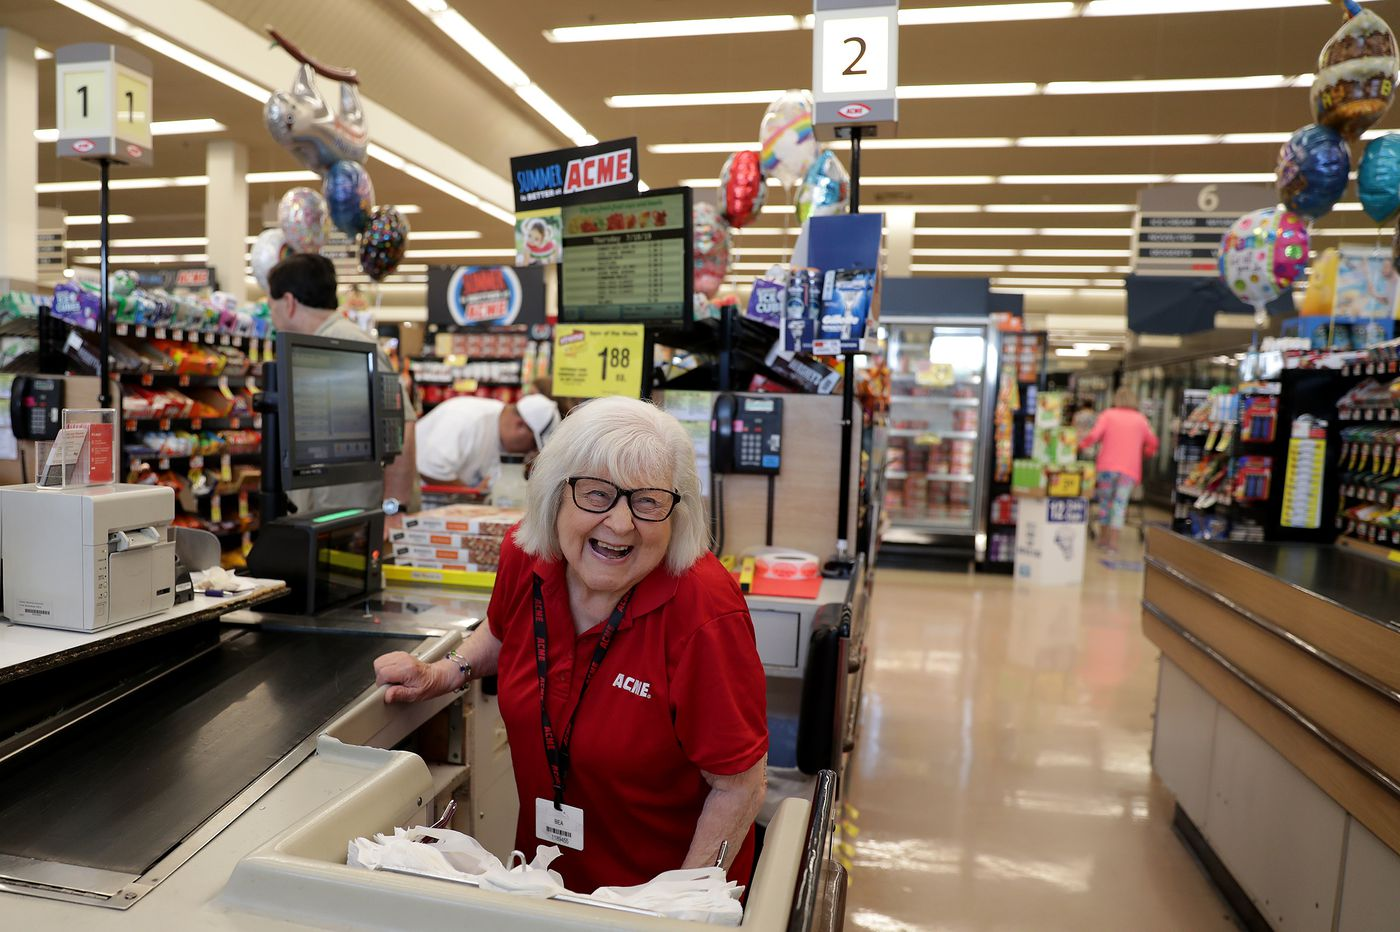 Acme cashier, who recently celebrated 90th birthday, still loves her work